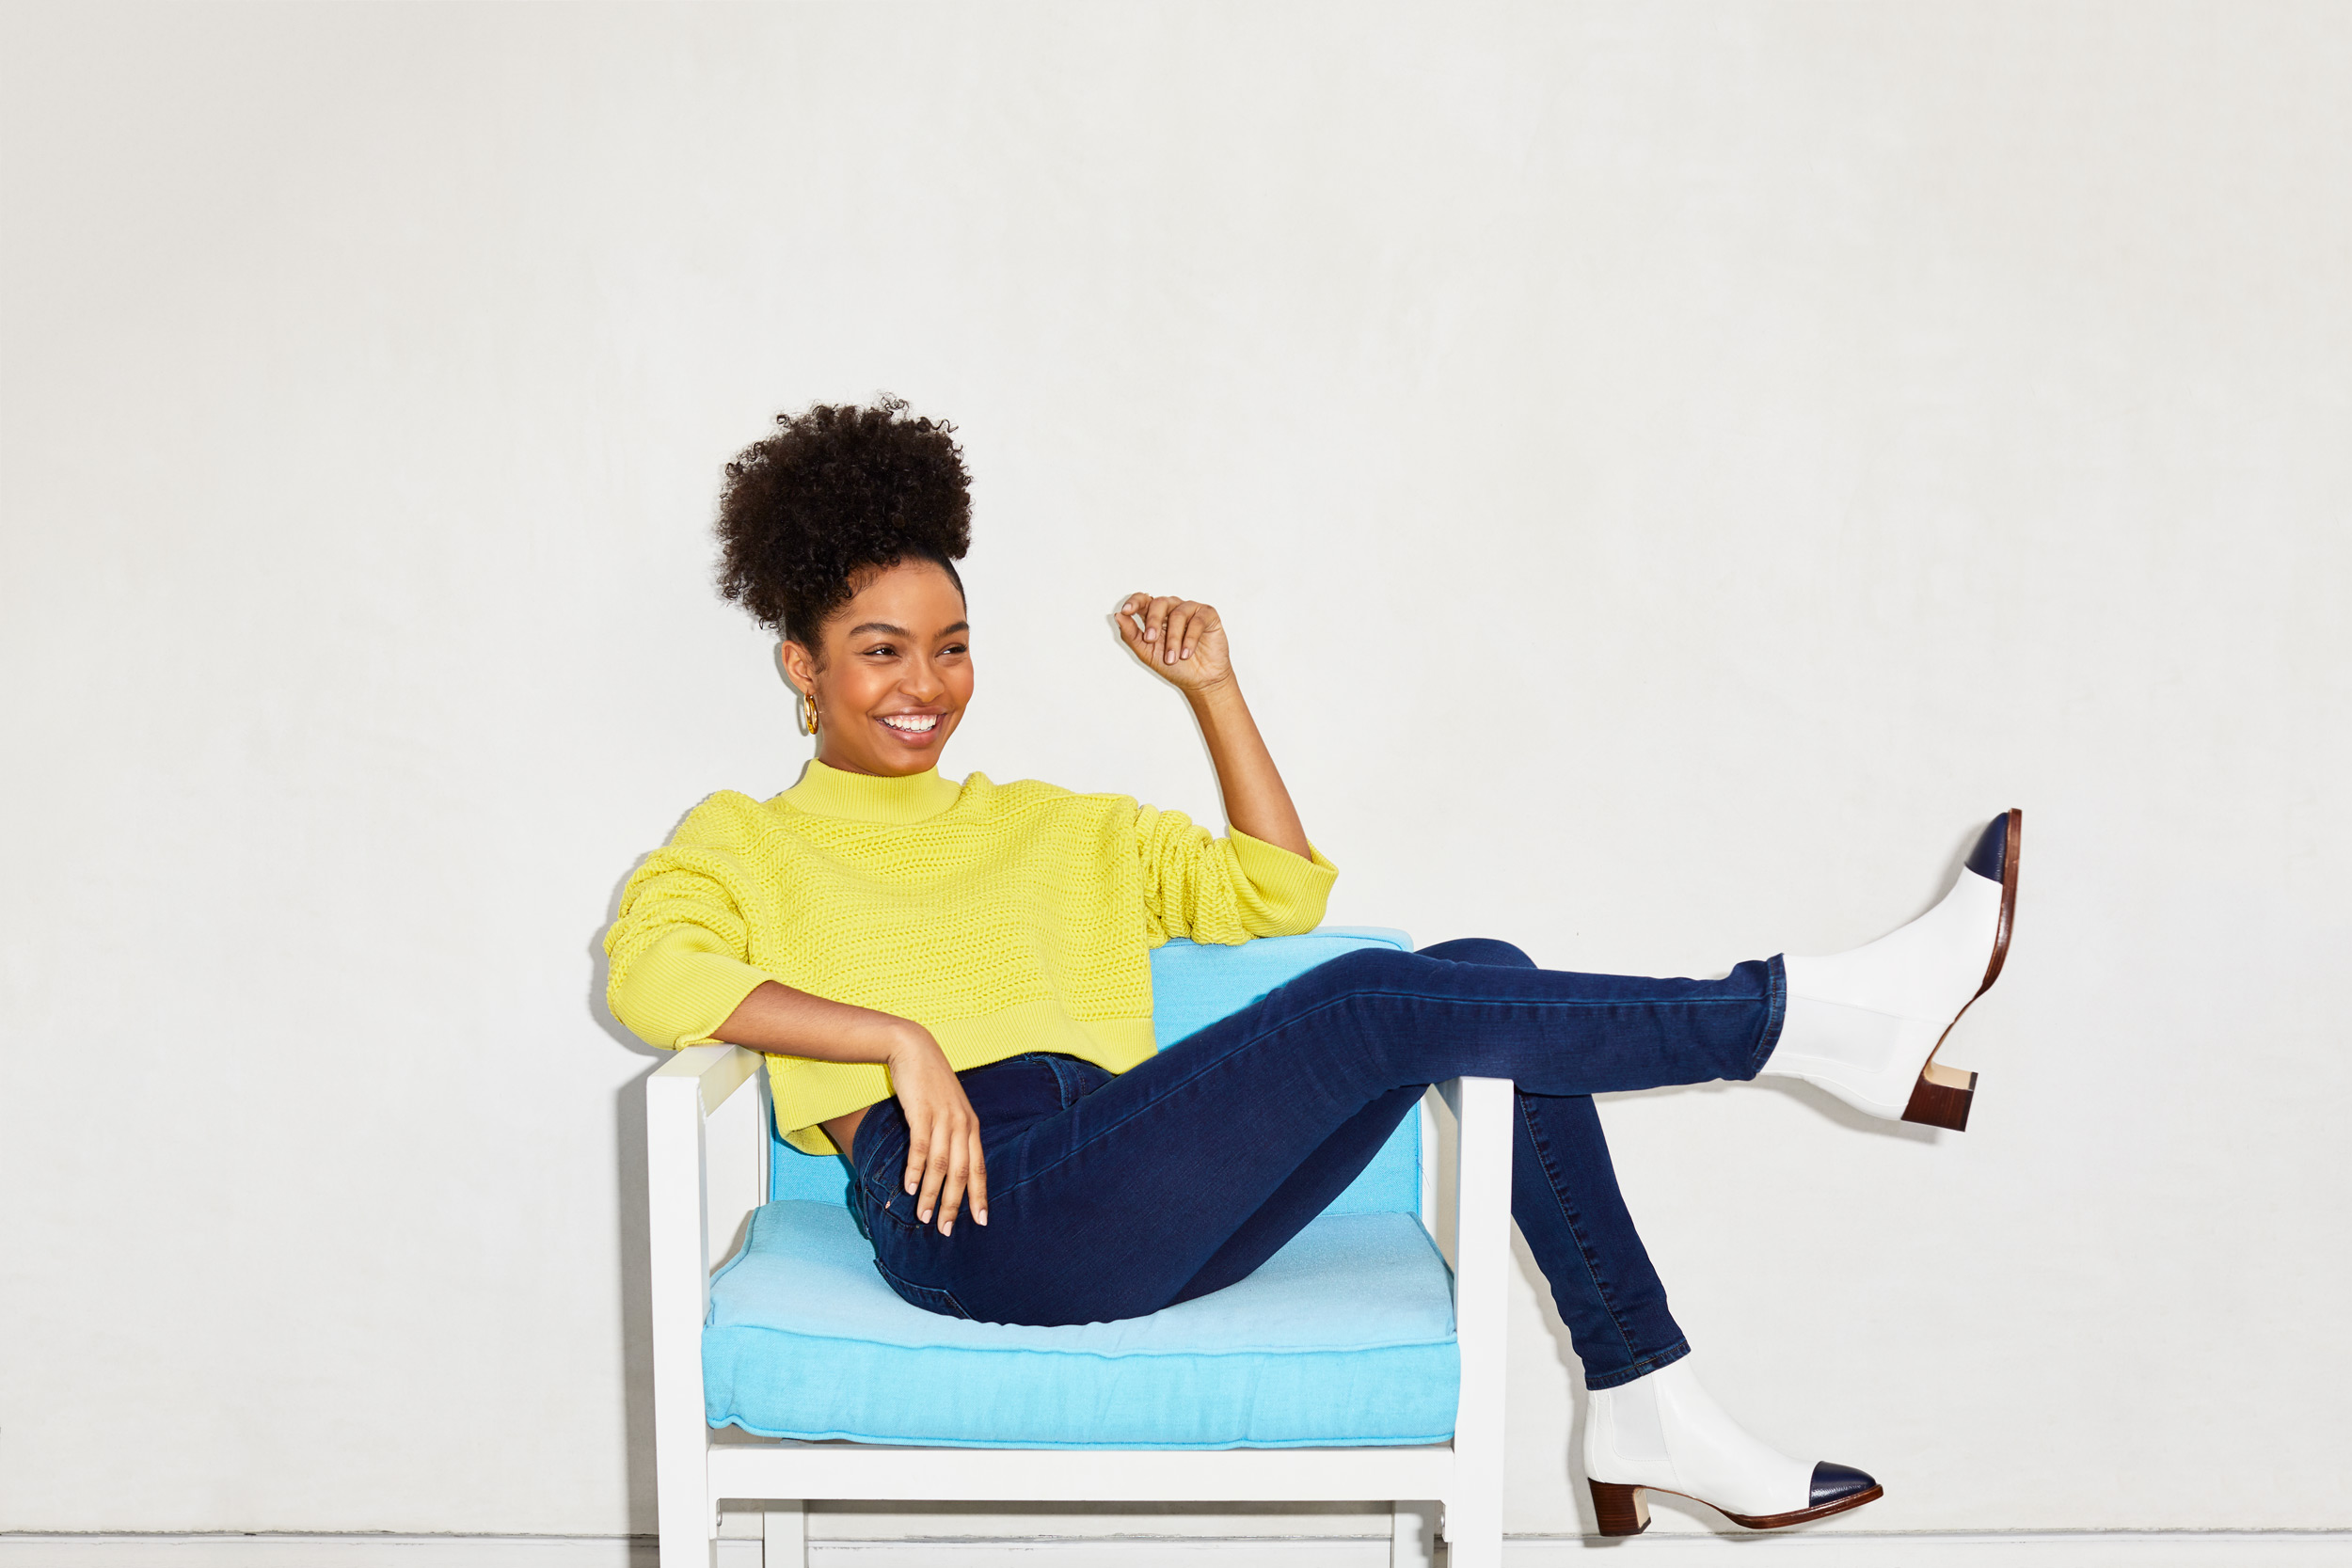 Actress Yara Shahidi wearing a yellow sweater and denim jeans. Kim Genevieve Los Angeles Portrait Photographer